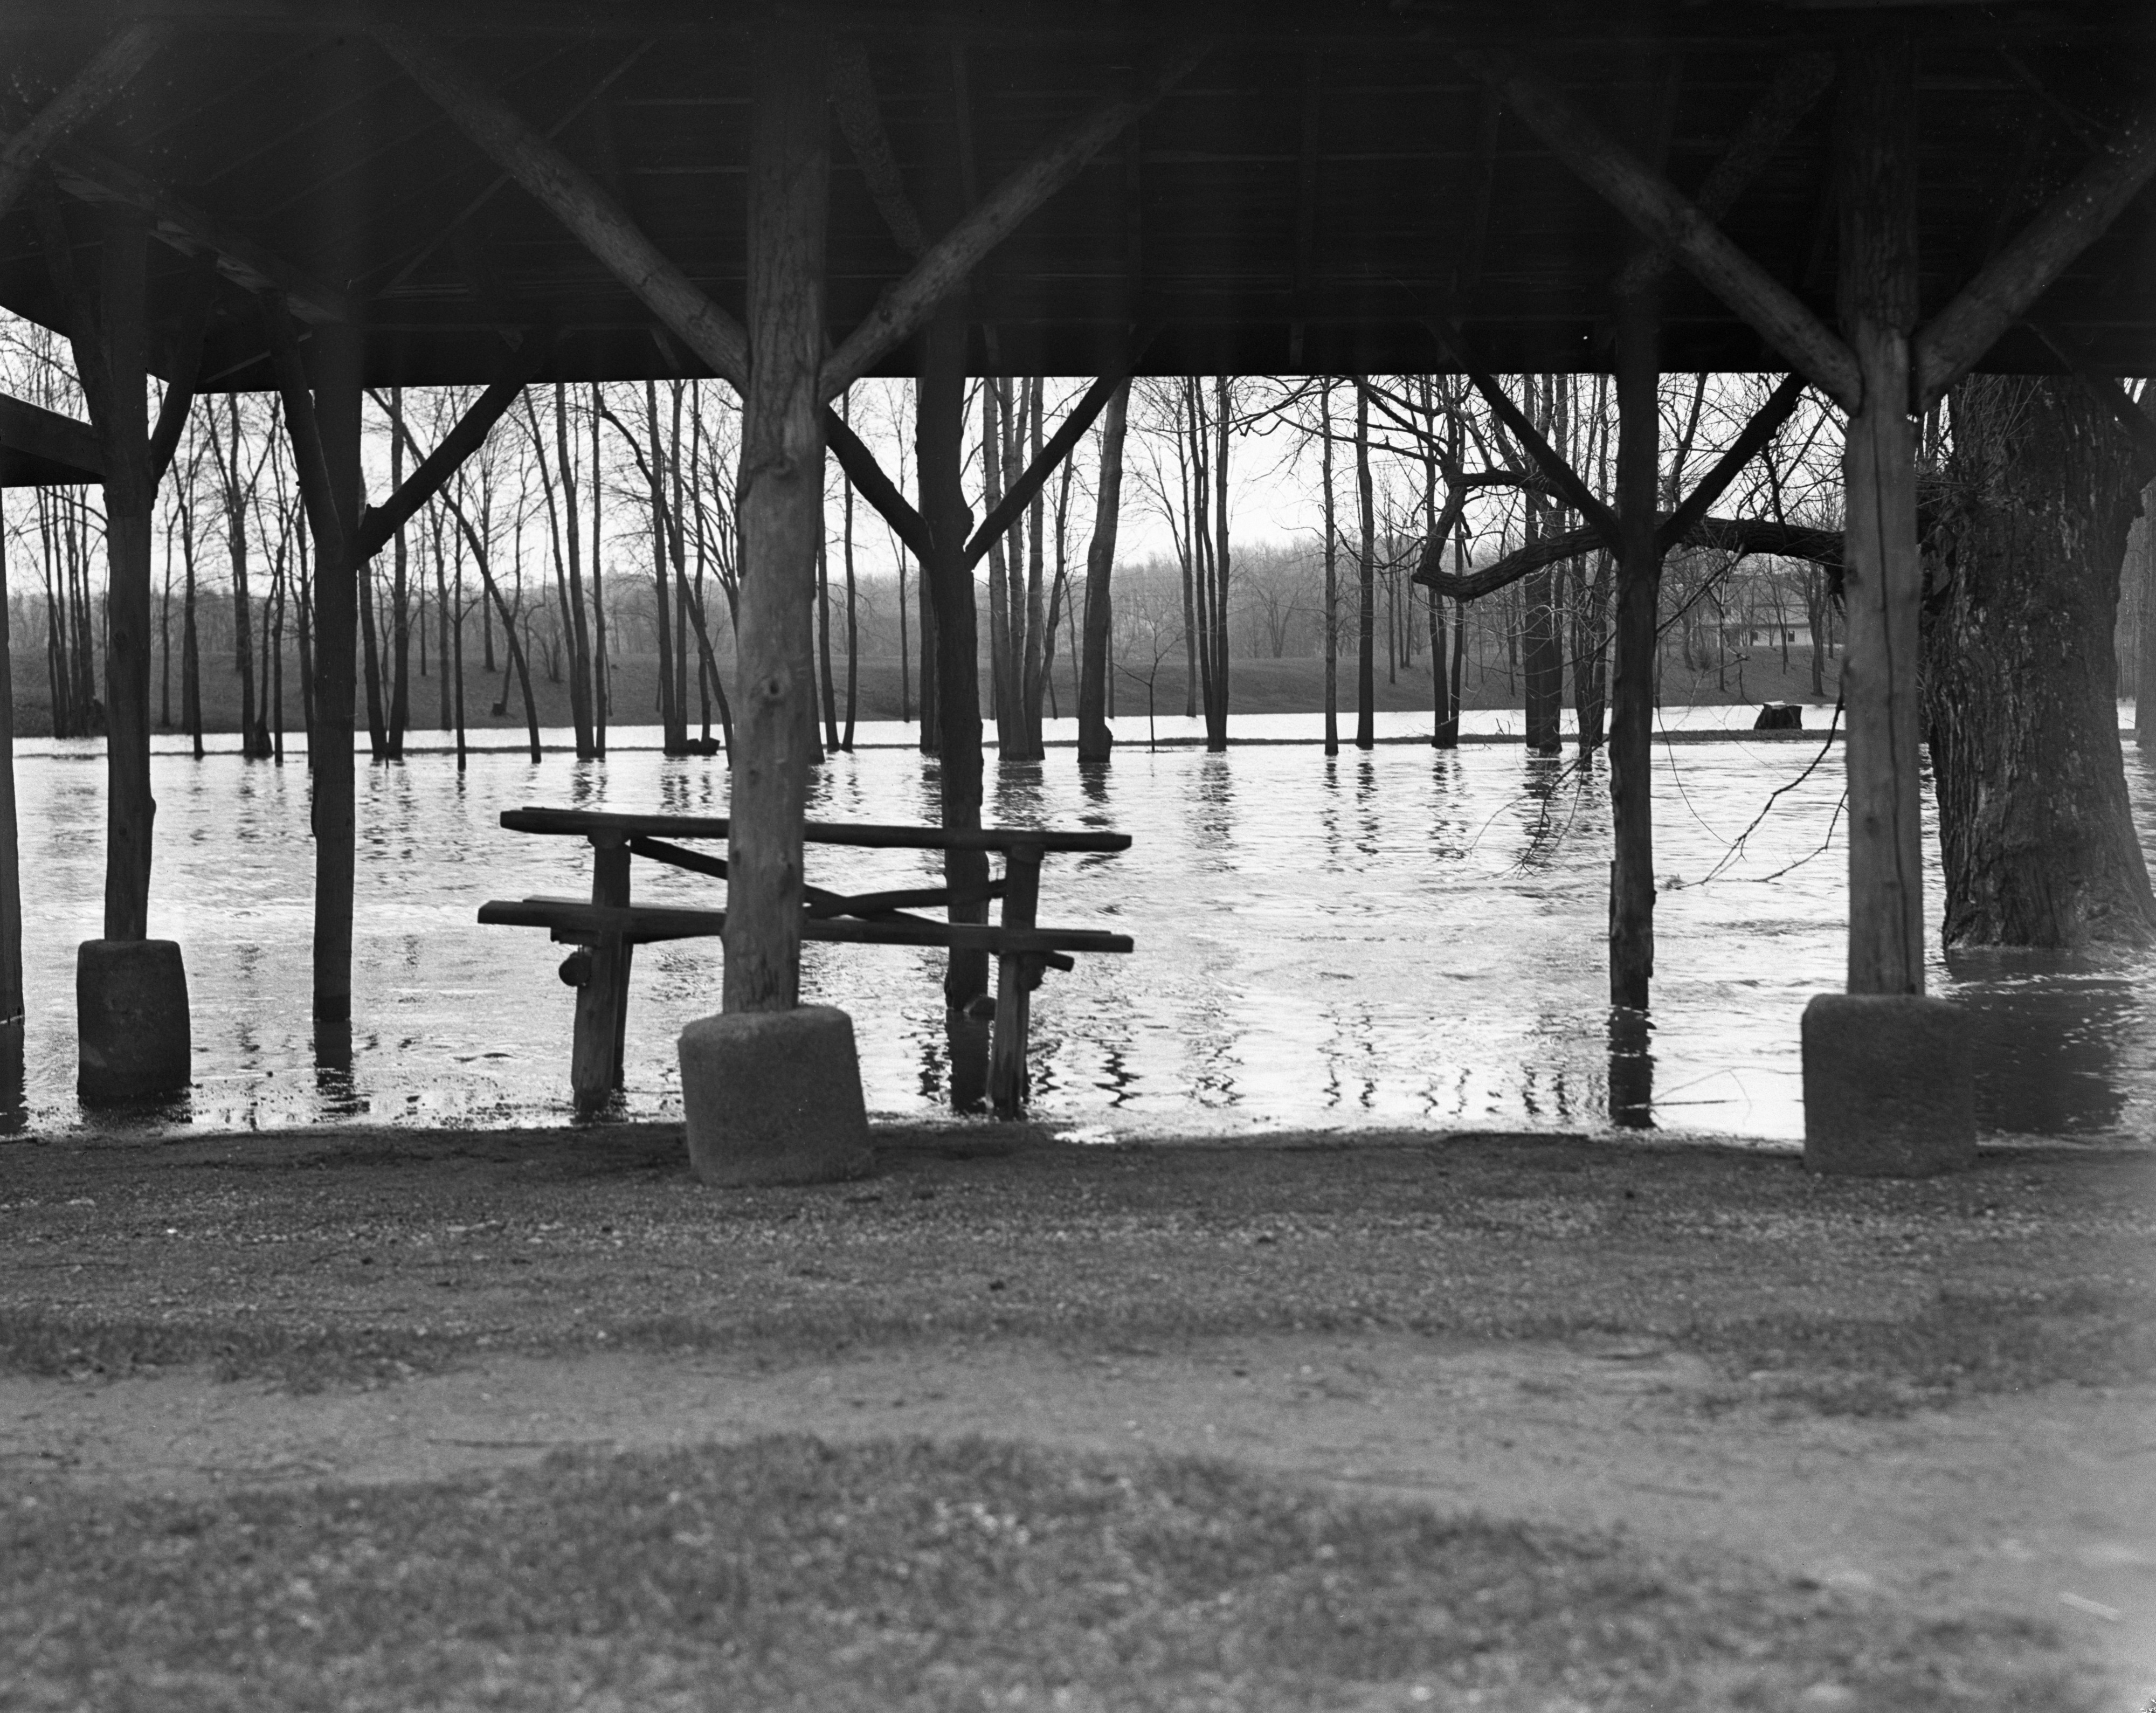 Second Stage of Huron River flood, Island Park, April 25, 1937 image